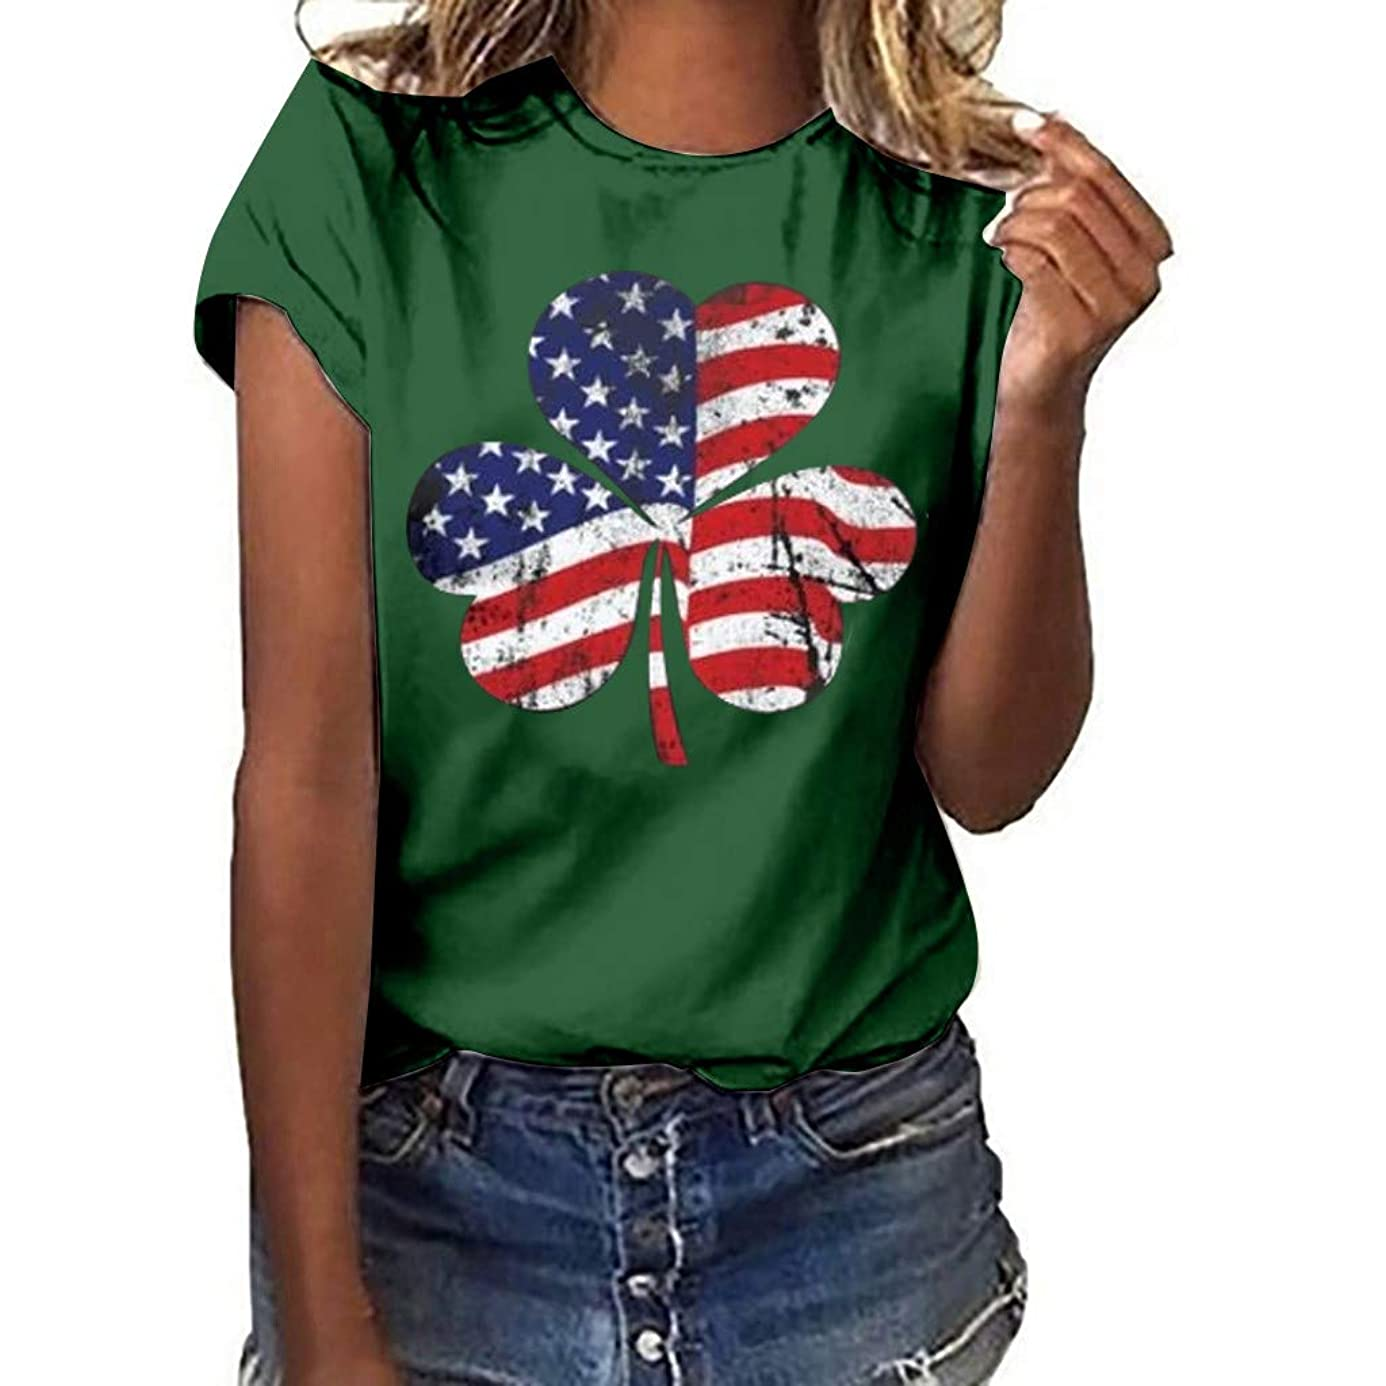 Pongfunsy Women Summer T-Shirt Teens Girls Plus Size Tops Casual Clover Independence Day Print Short Sleeve Blouse T